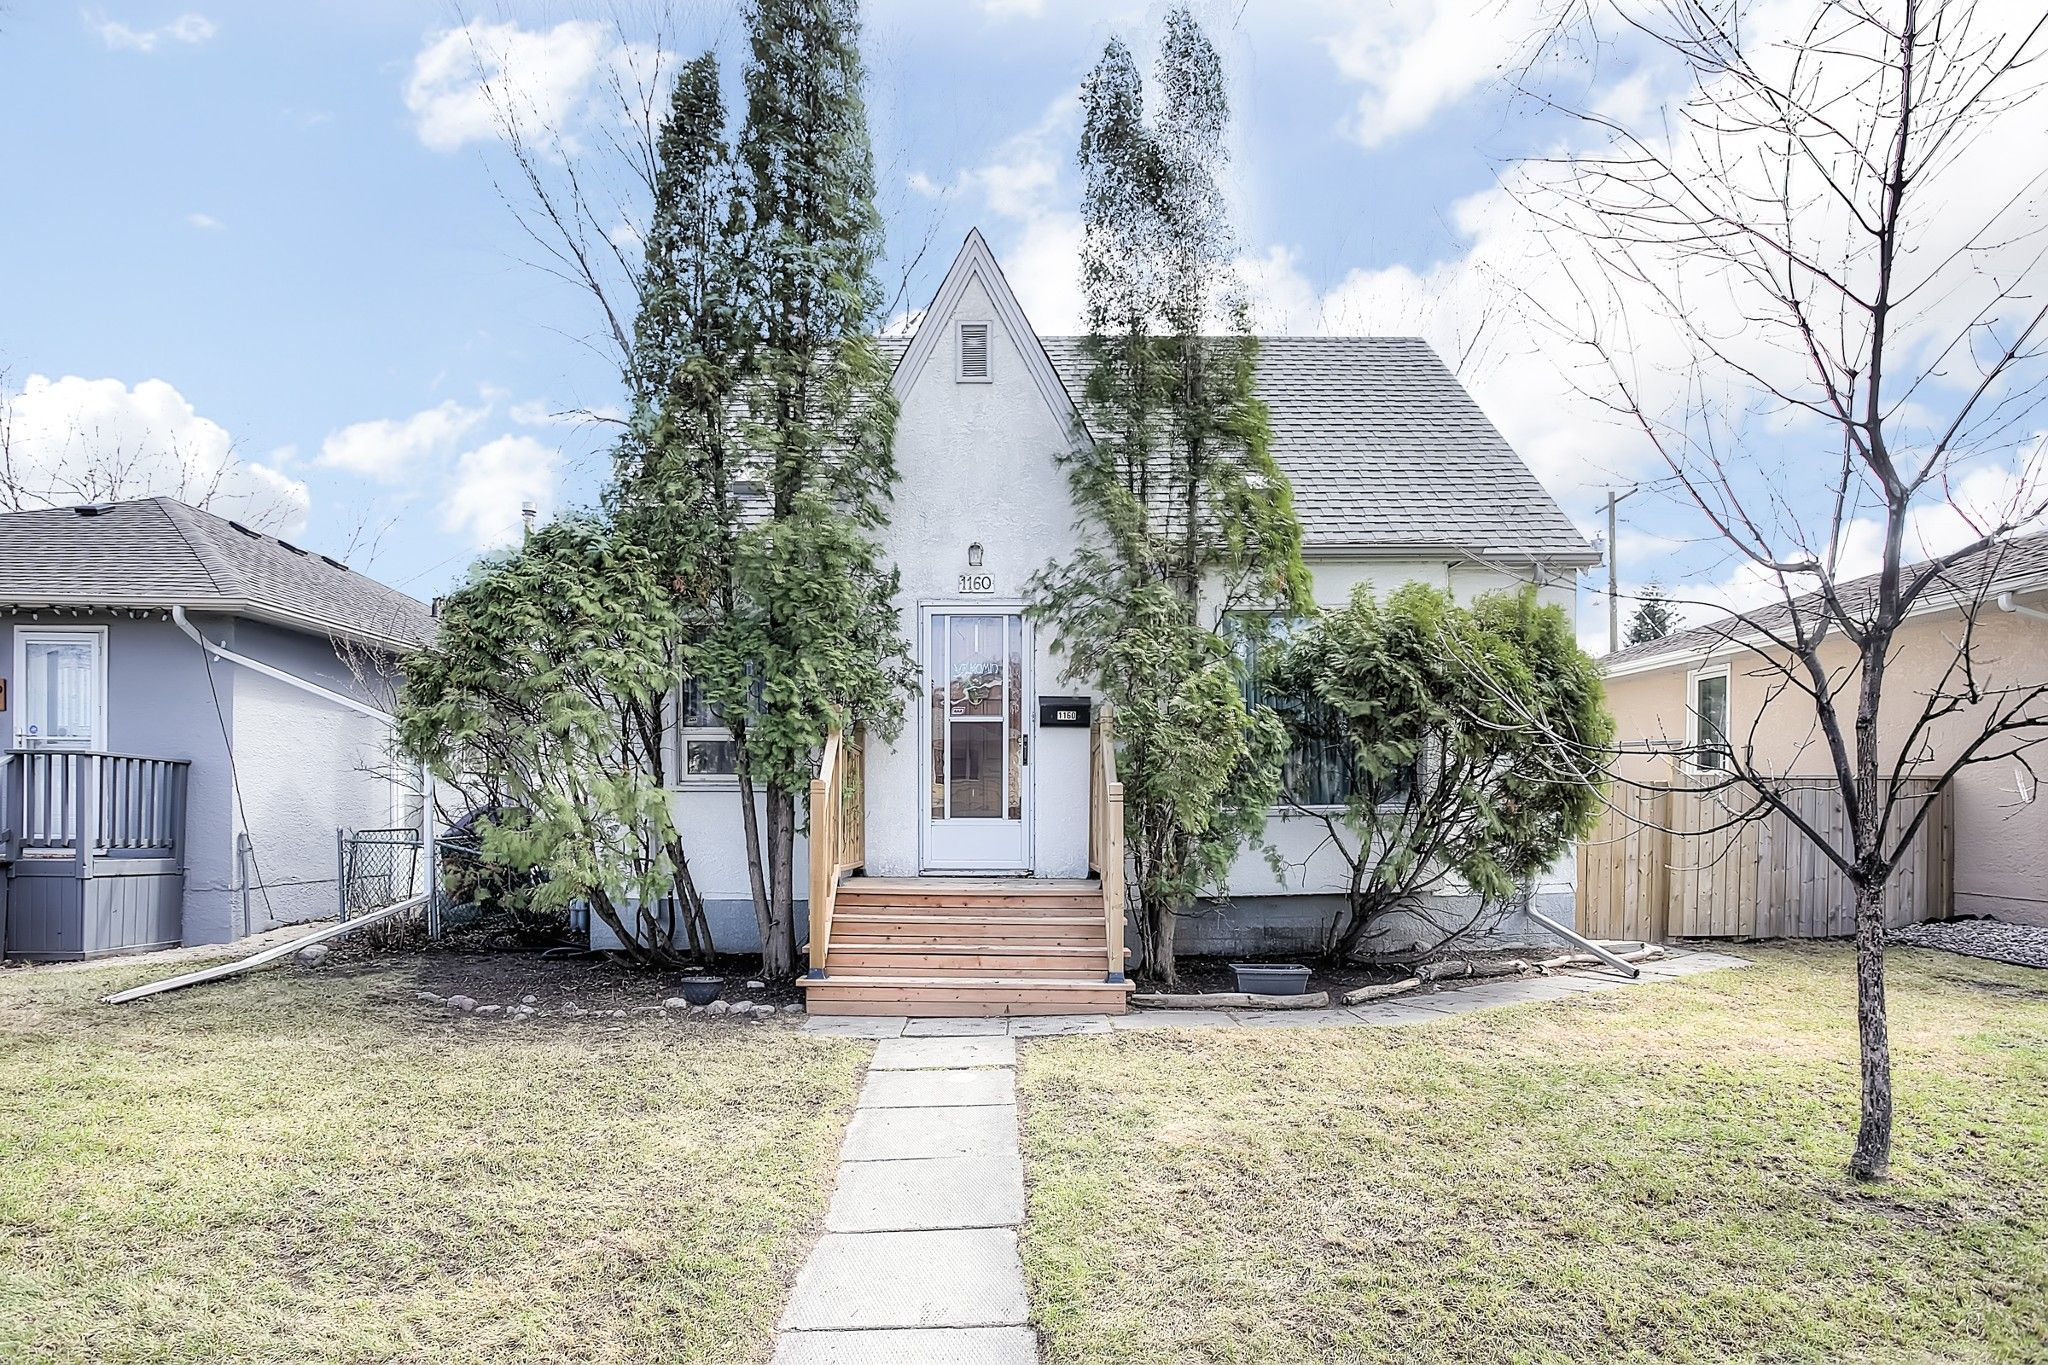 Main Photo: 1160 Warsaw Avenue in Winnipeg: Crescentwood Single Family Detached for sale (1Bw)  : MLS®# 202009235